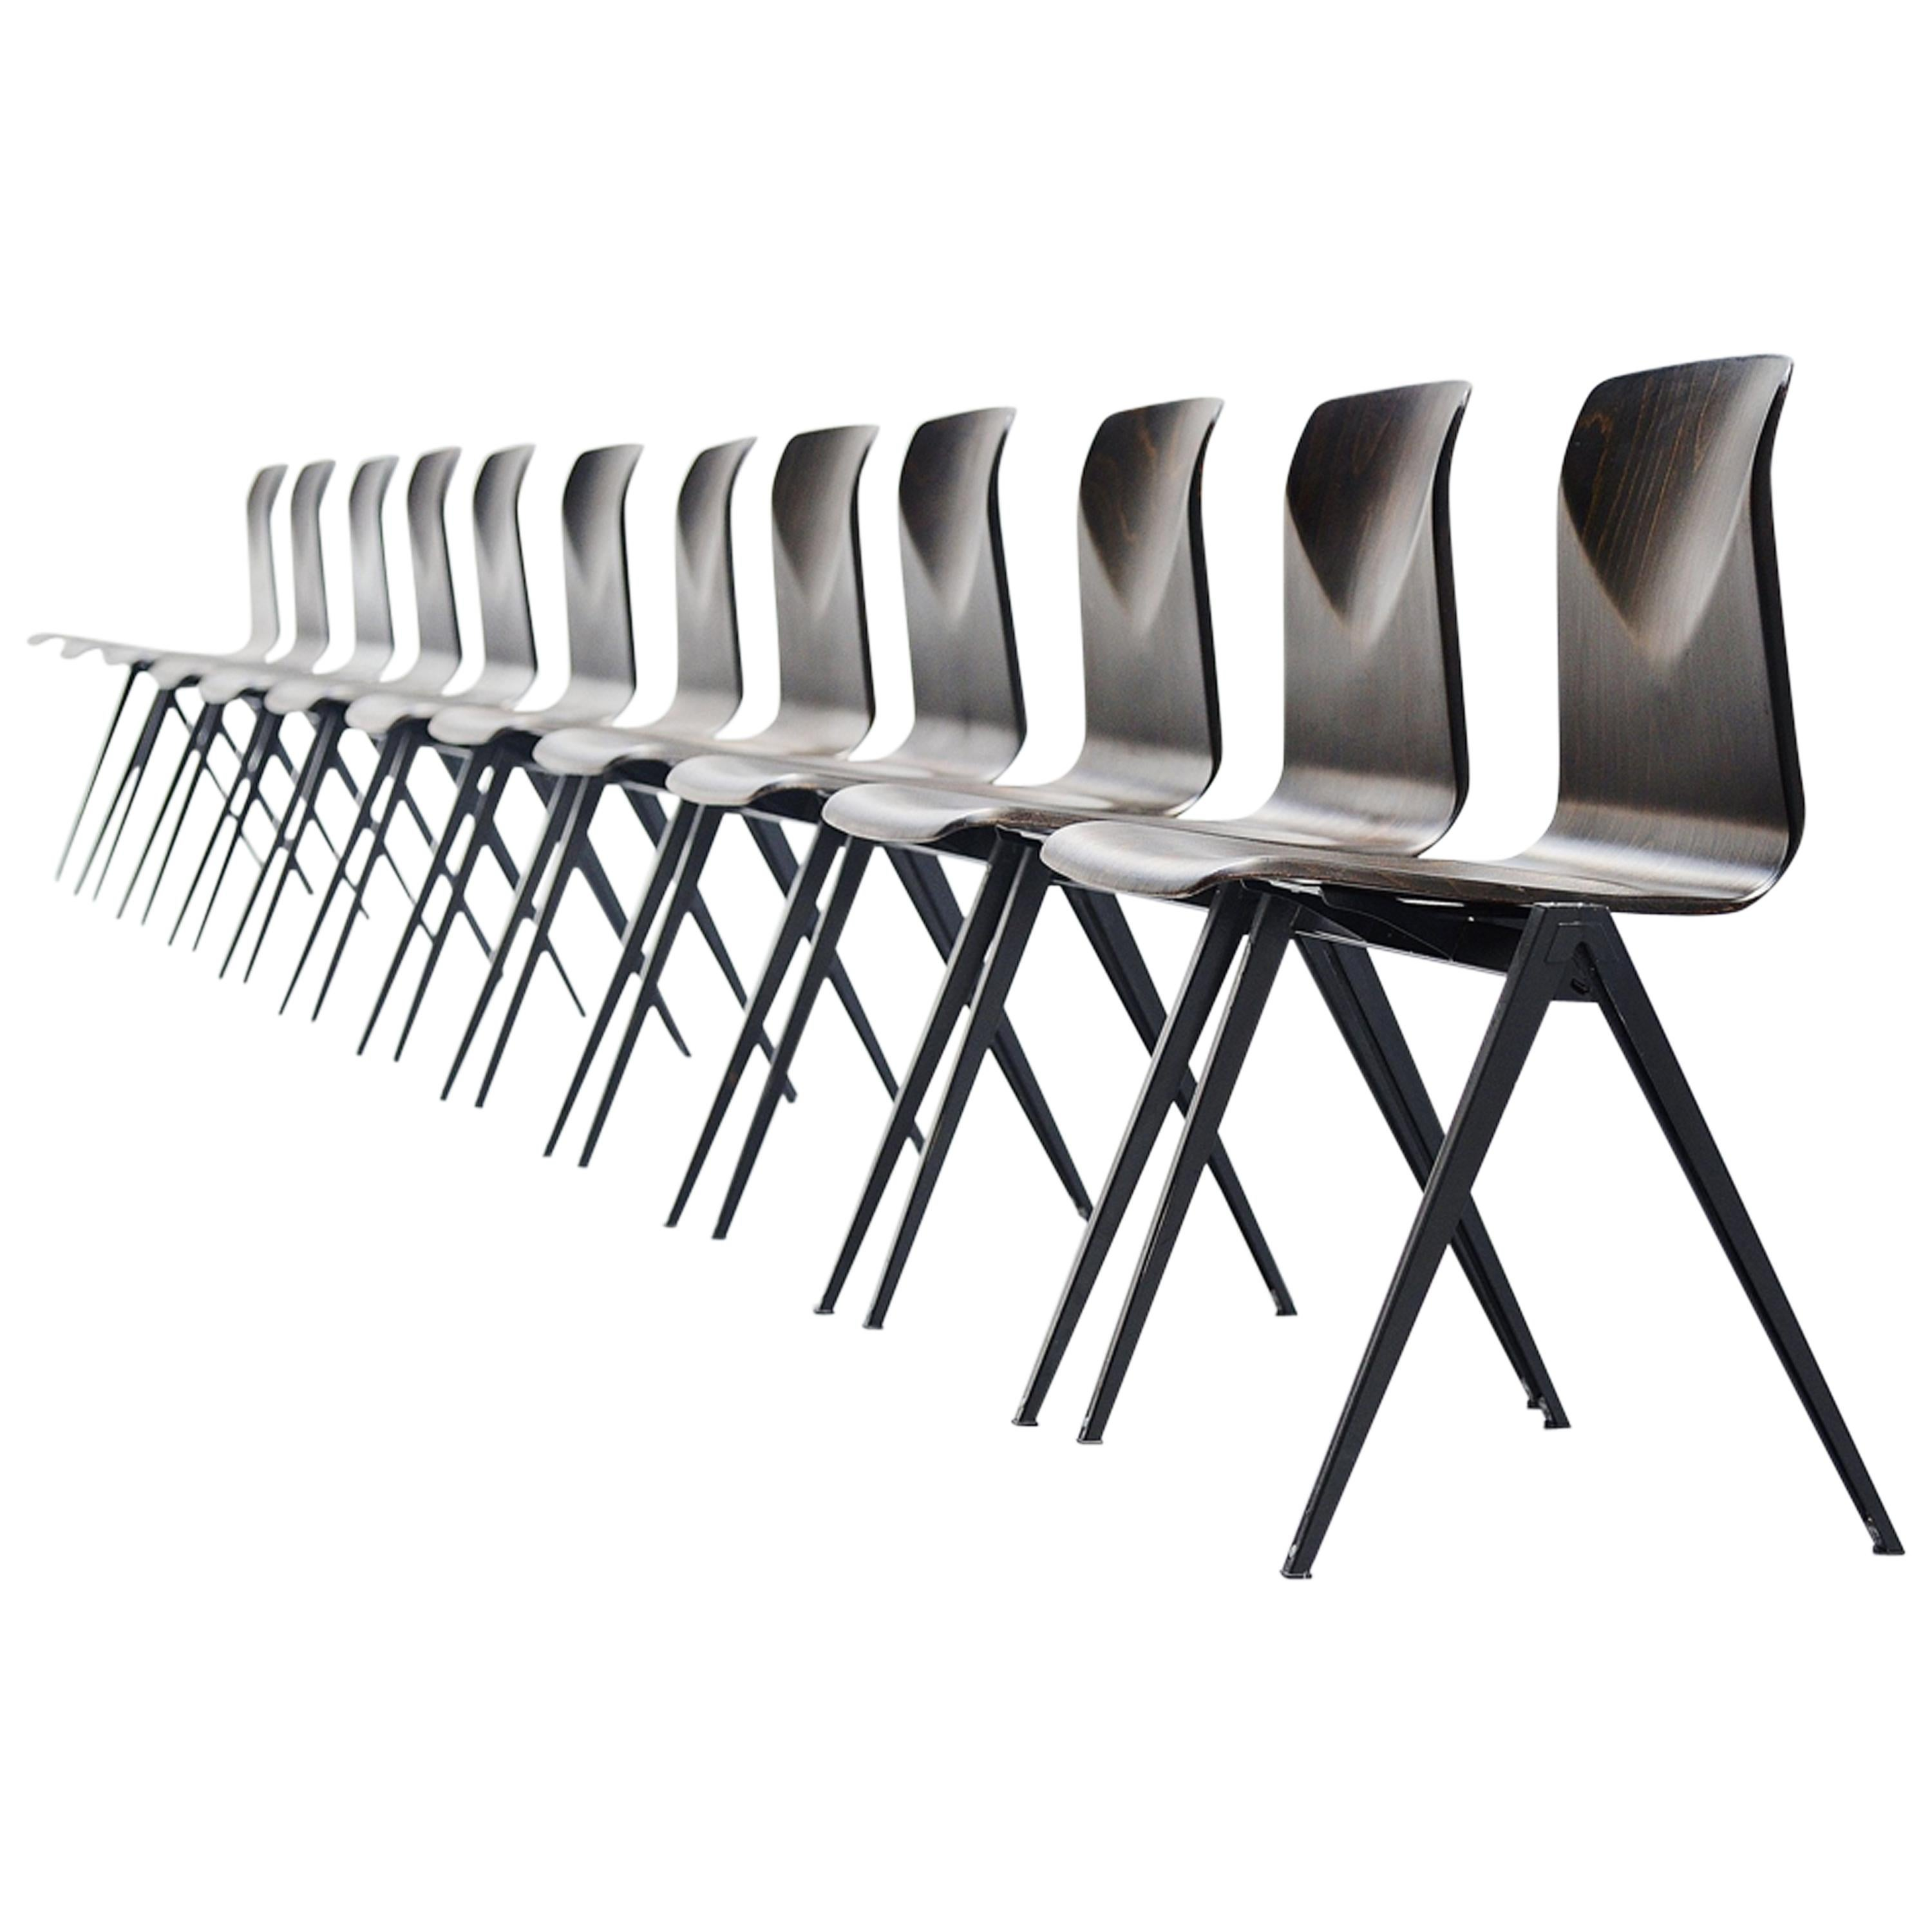 300x Pagholz Stacking Chairs Set Black, Germany, 1970